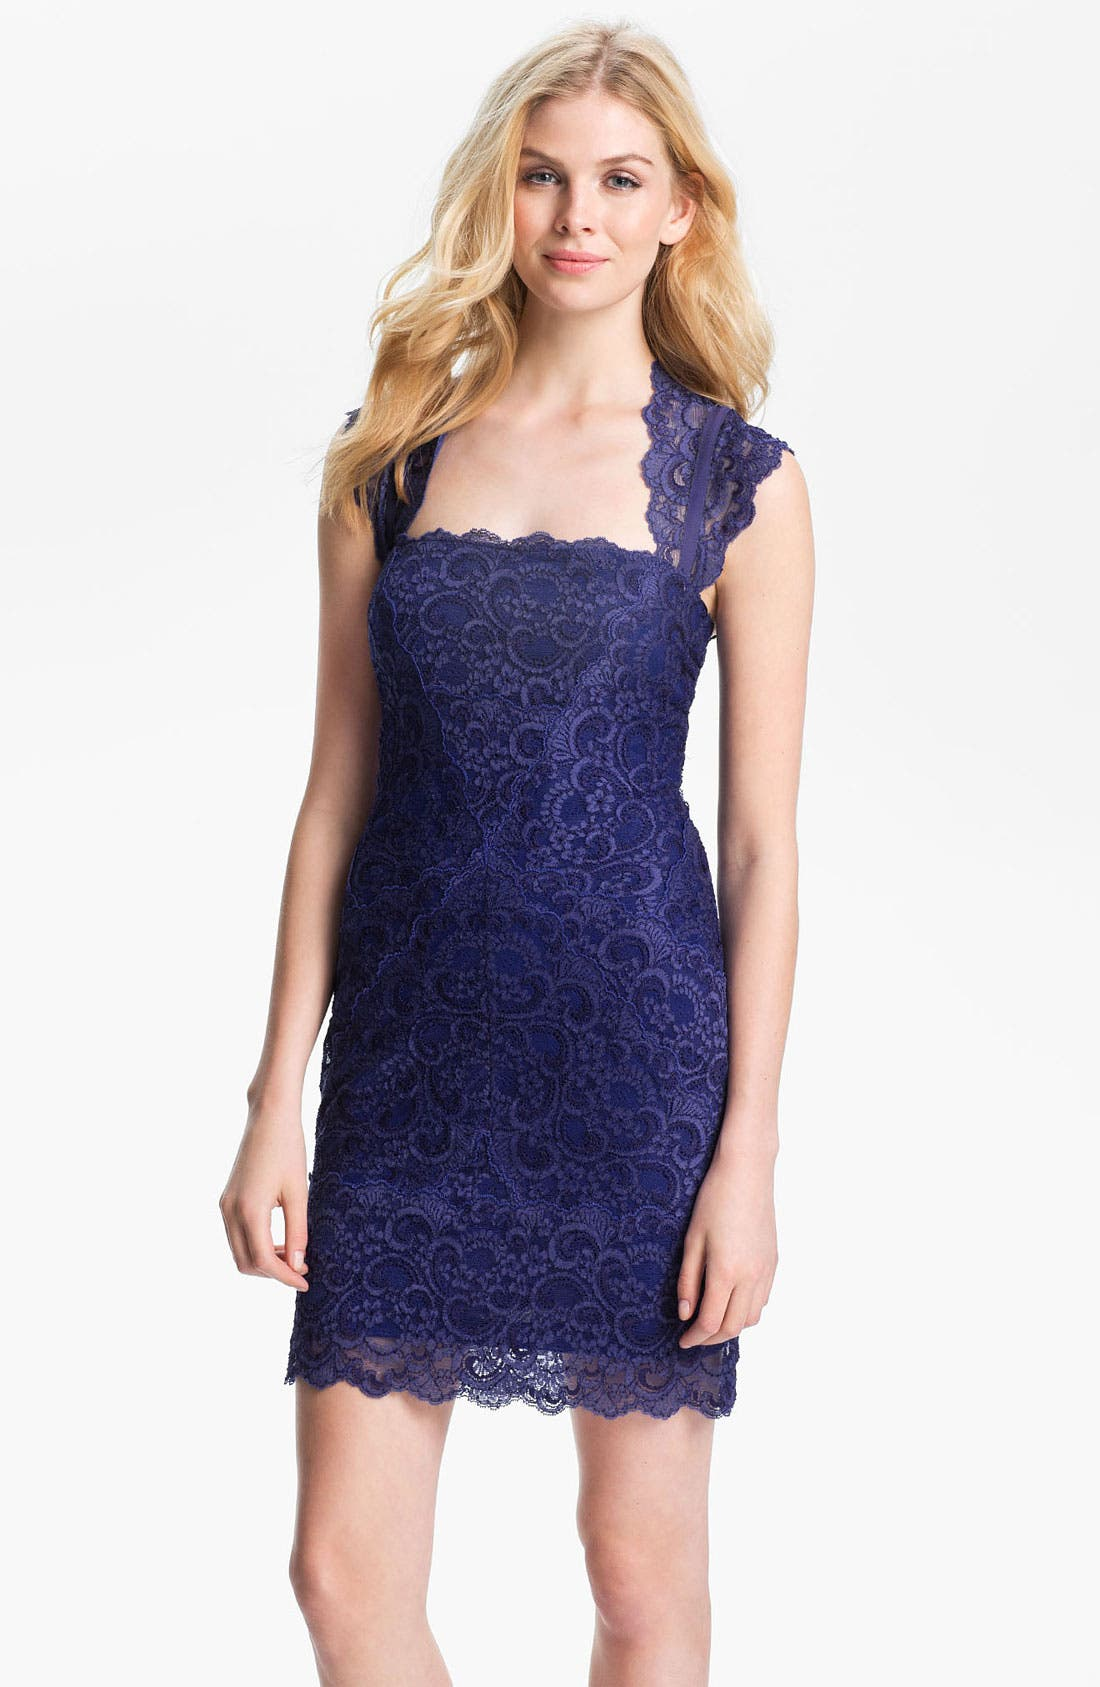 Alternate Image 1 Selected - Nicole Miller Lace Fitted Cap Sleeve Lace Sheath Dress